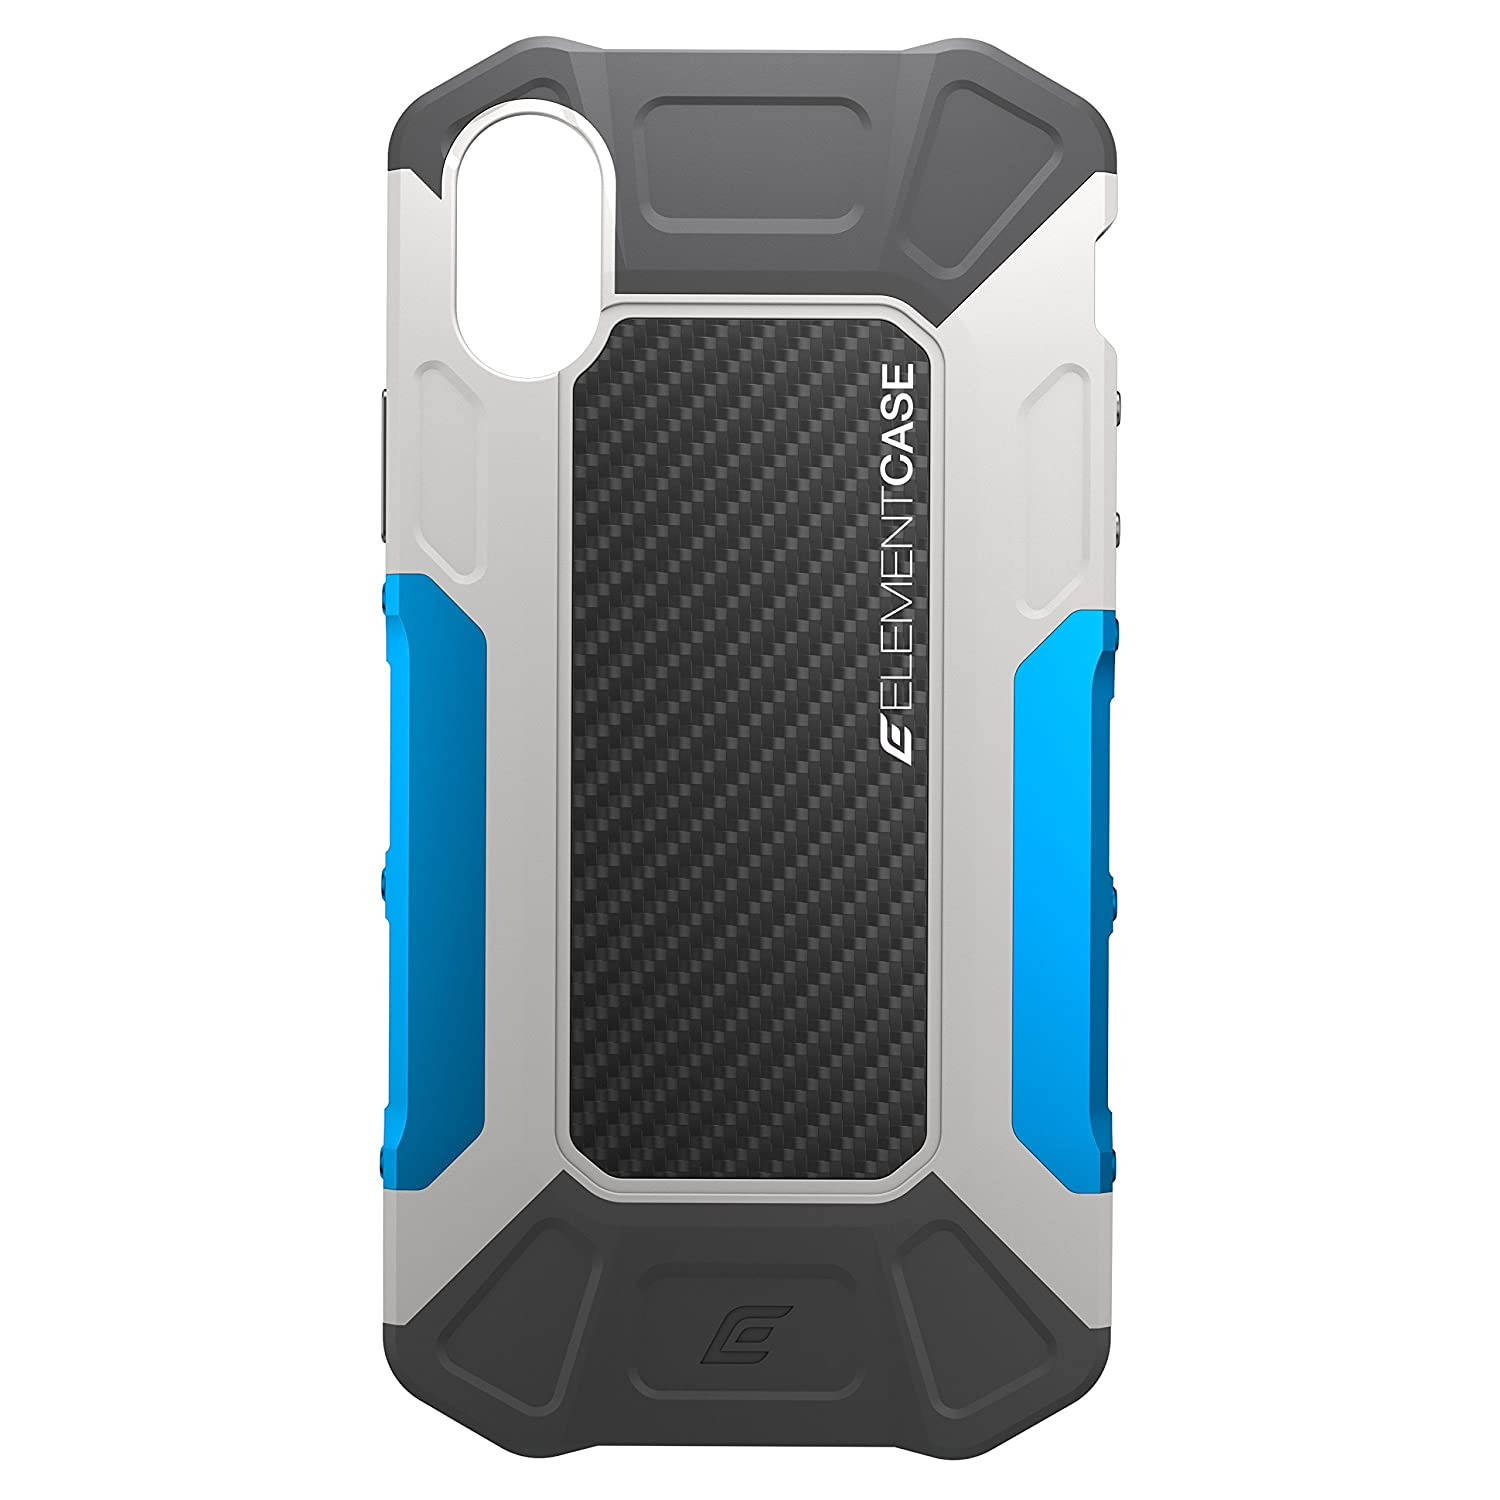 e6fd06689ae7d5 Amazon.com  Element Case EMT-322-175EY-02 Formula Drop Tested Case for  iPhone X XS - Grey Blue  Cell Phones   Accessories